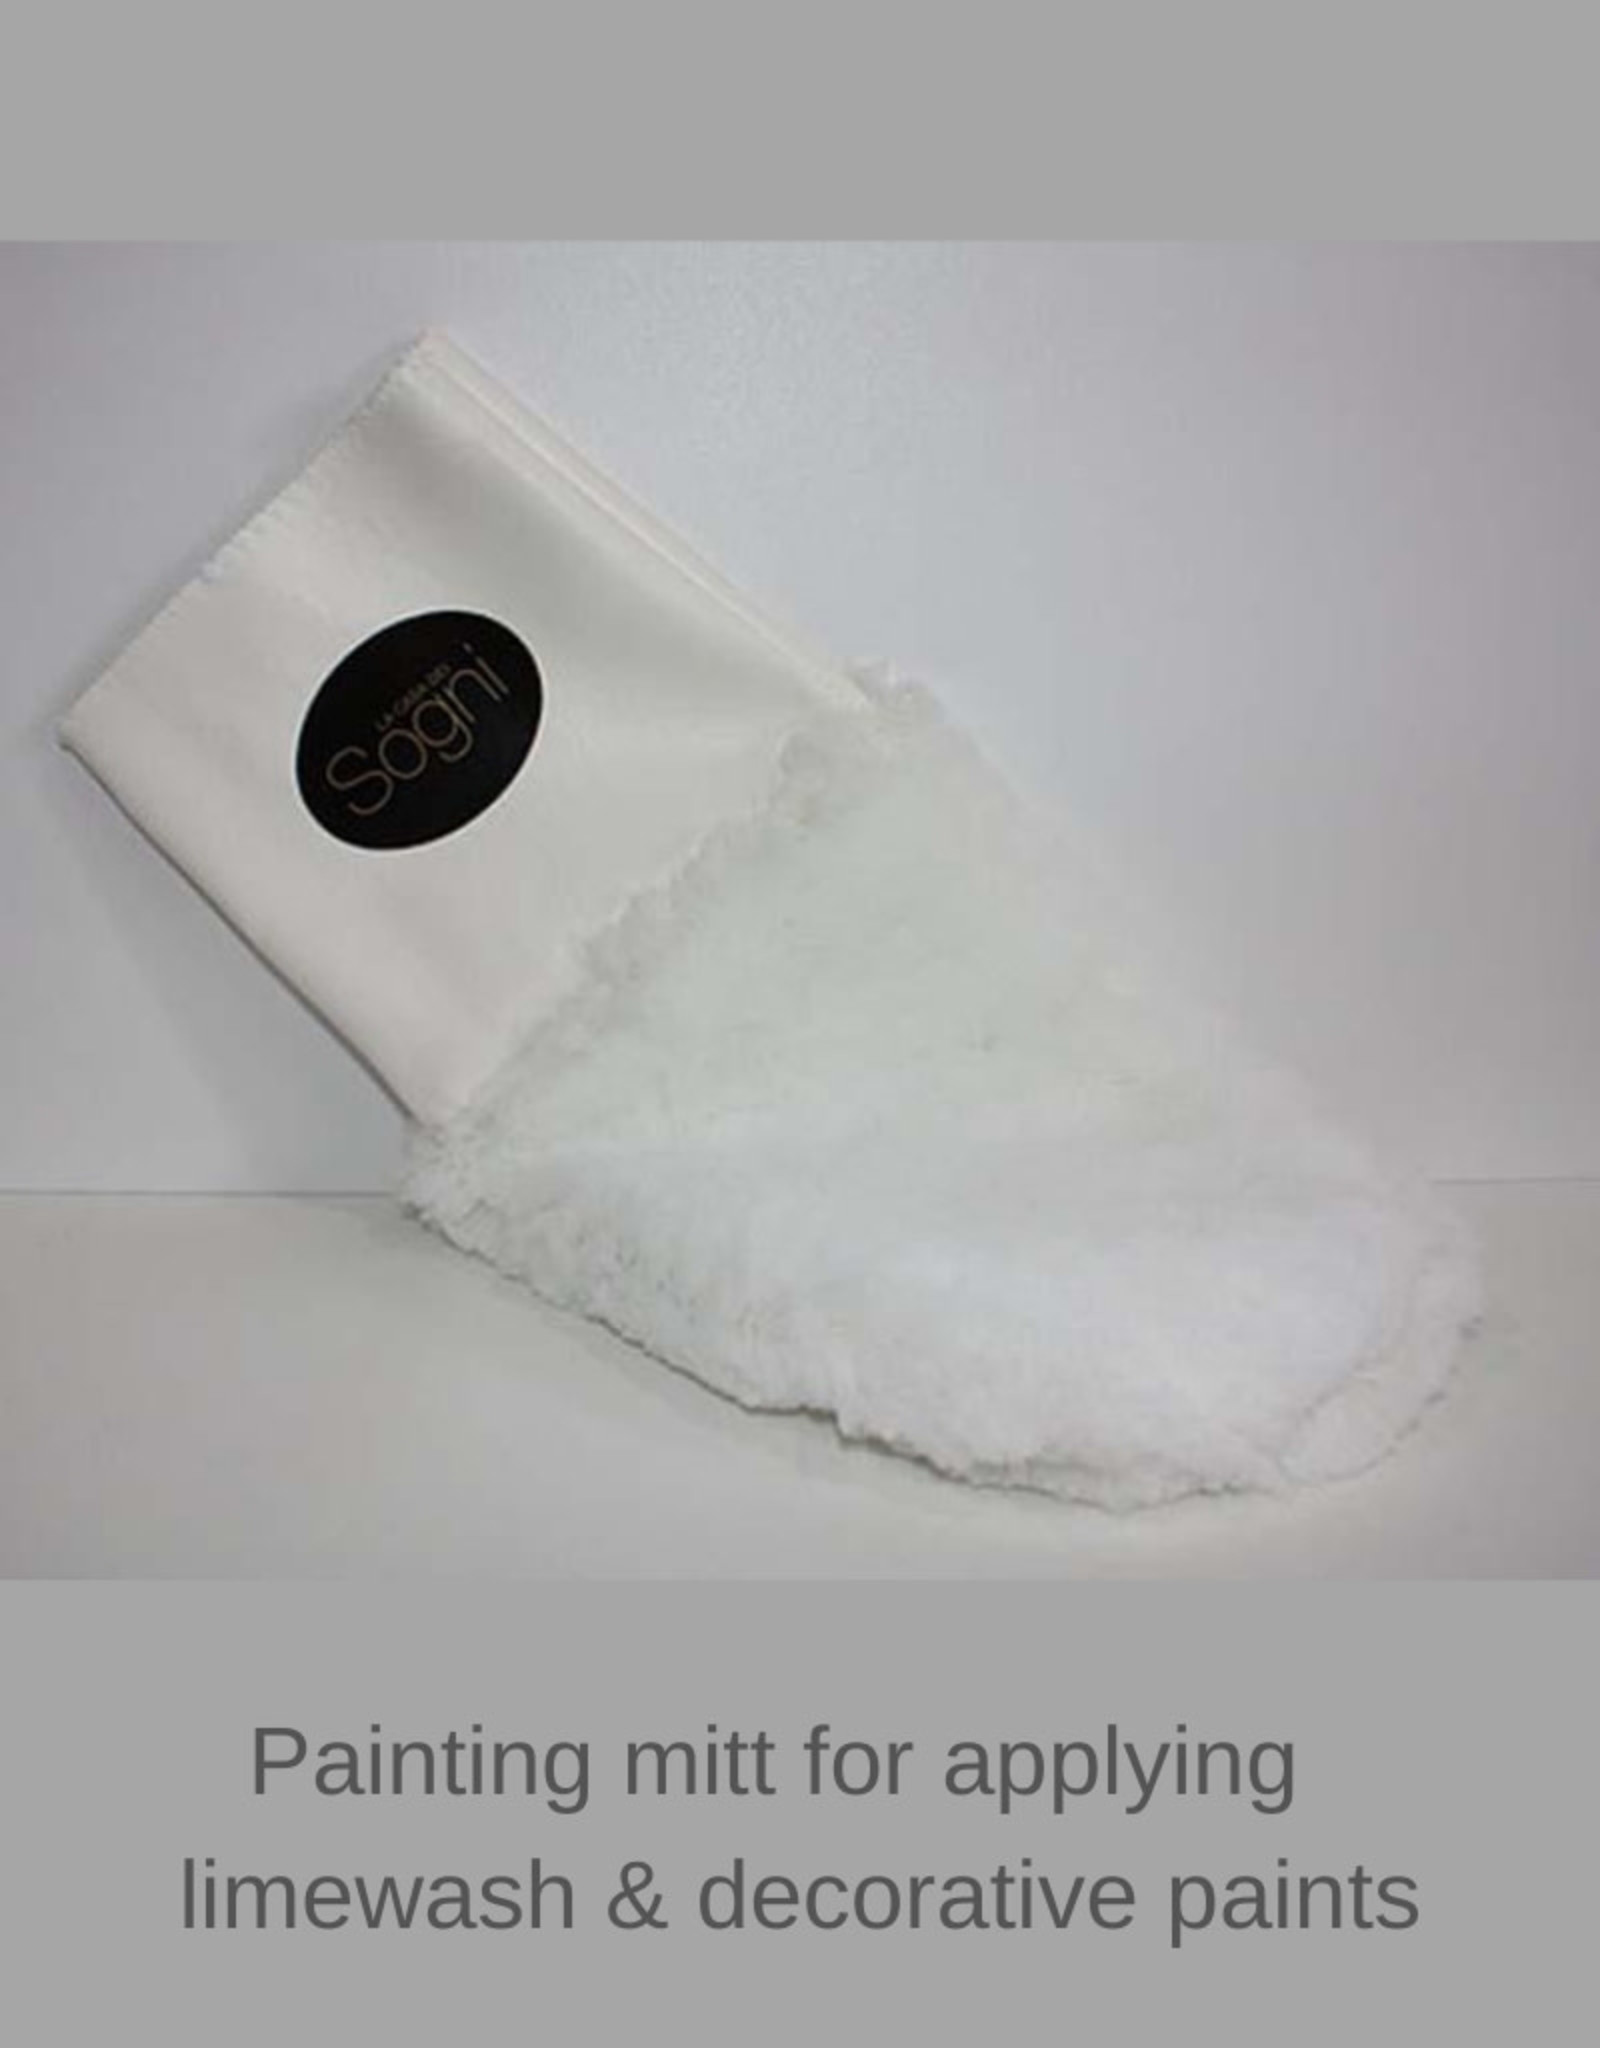 ADVANCED SPIRITO LIBERO Painting Mitt